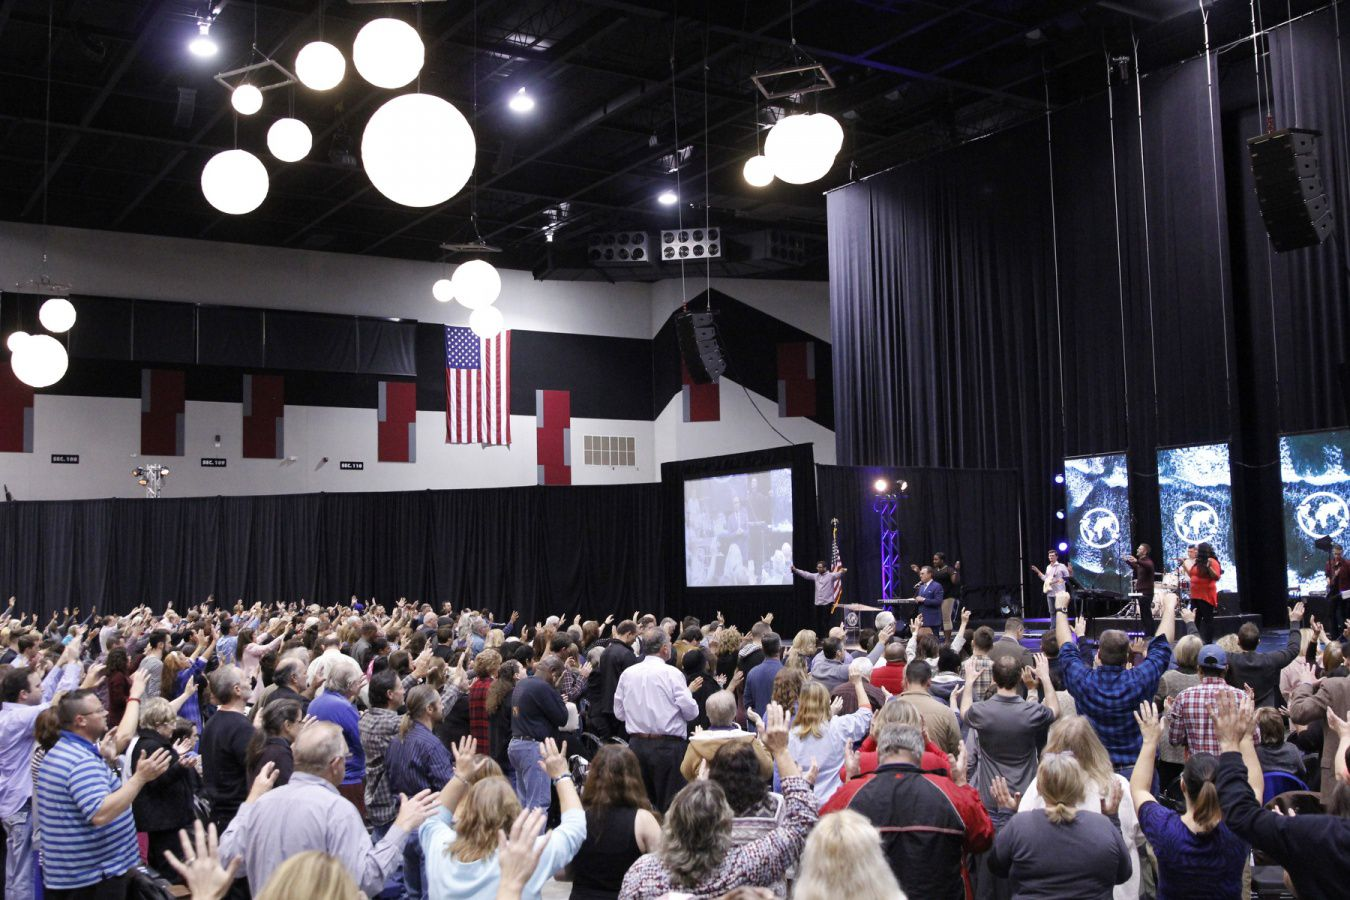 Tulsa Ok, Holy Spirit Meetings, Day 3